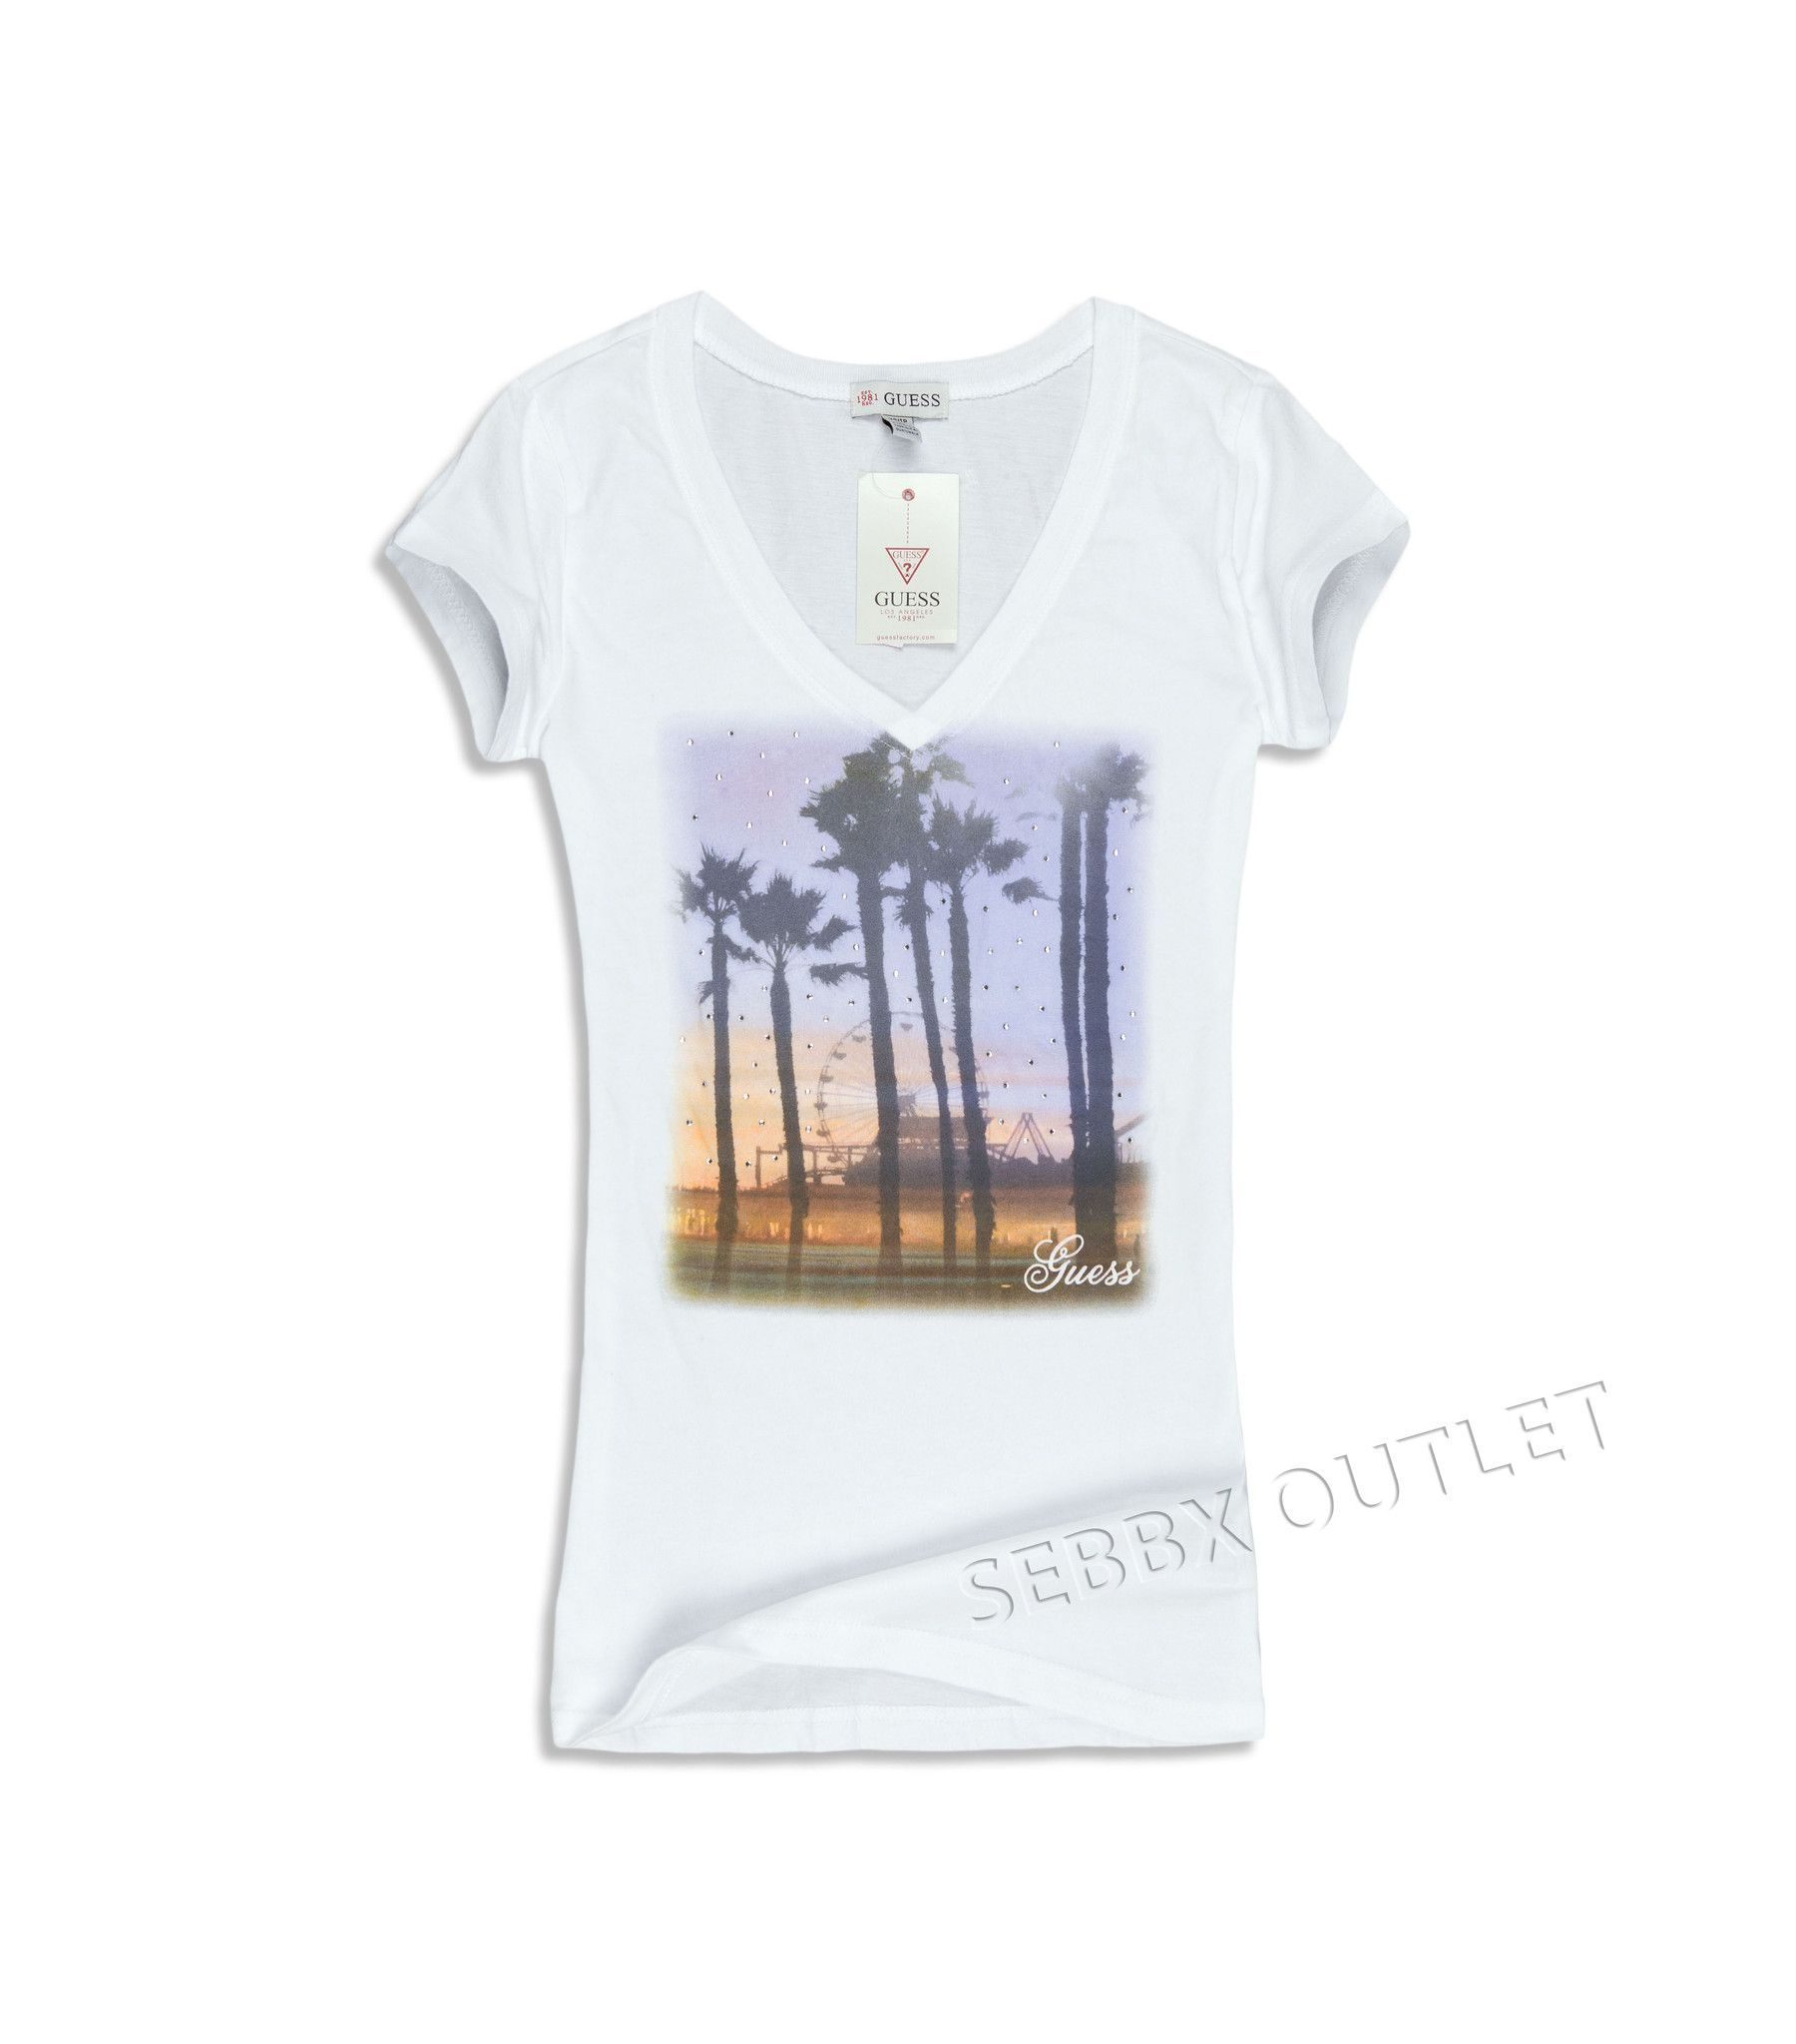 19db326d7f Guess T Shirt Harpa Tropical Tee True White V Neck Short Sleeve ...